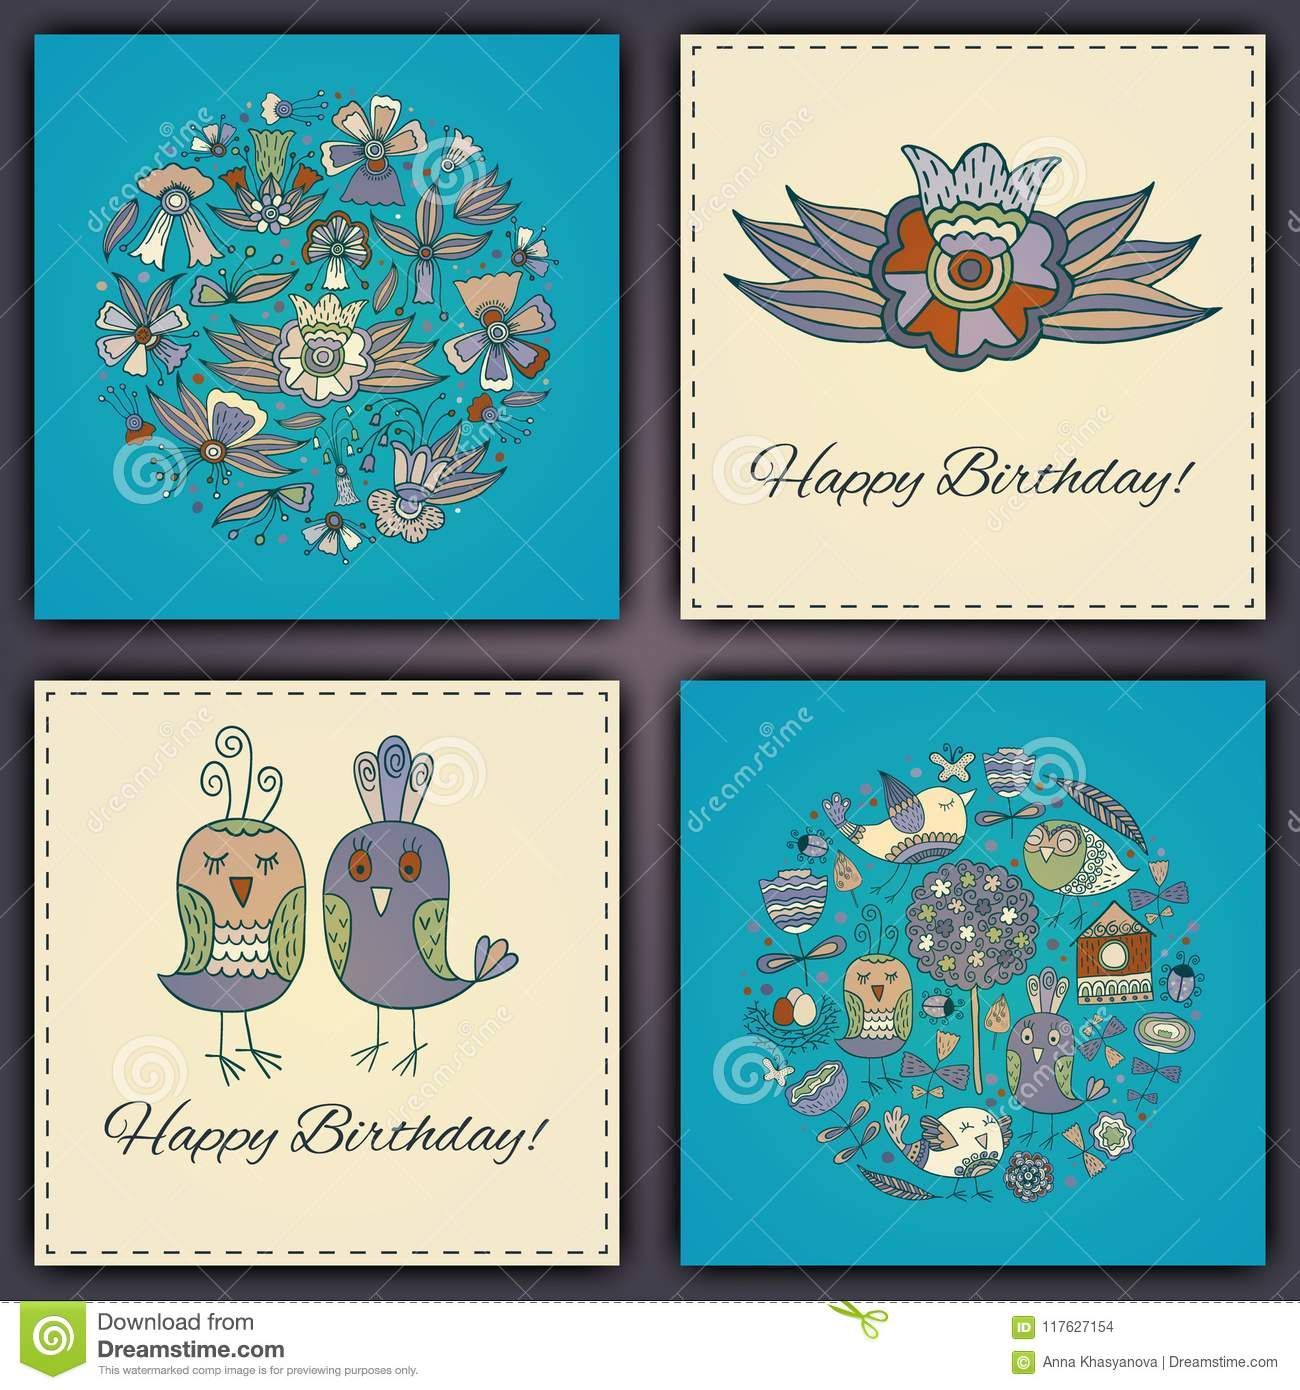 Happy Birthday Vector Greeting Card With Abstract Doodle Birds And